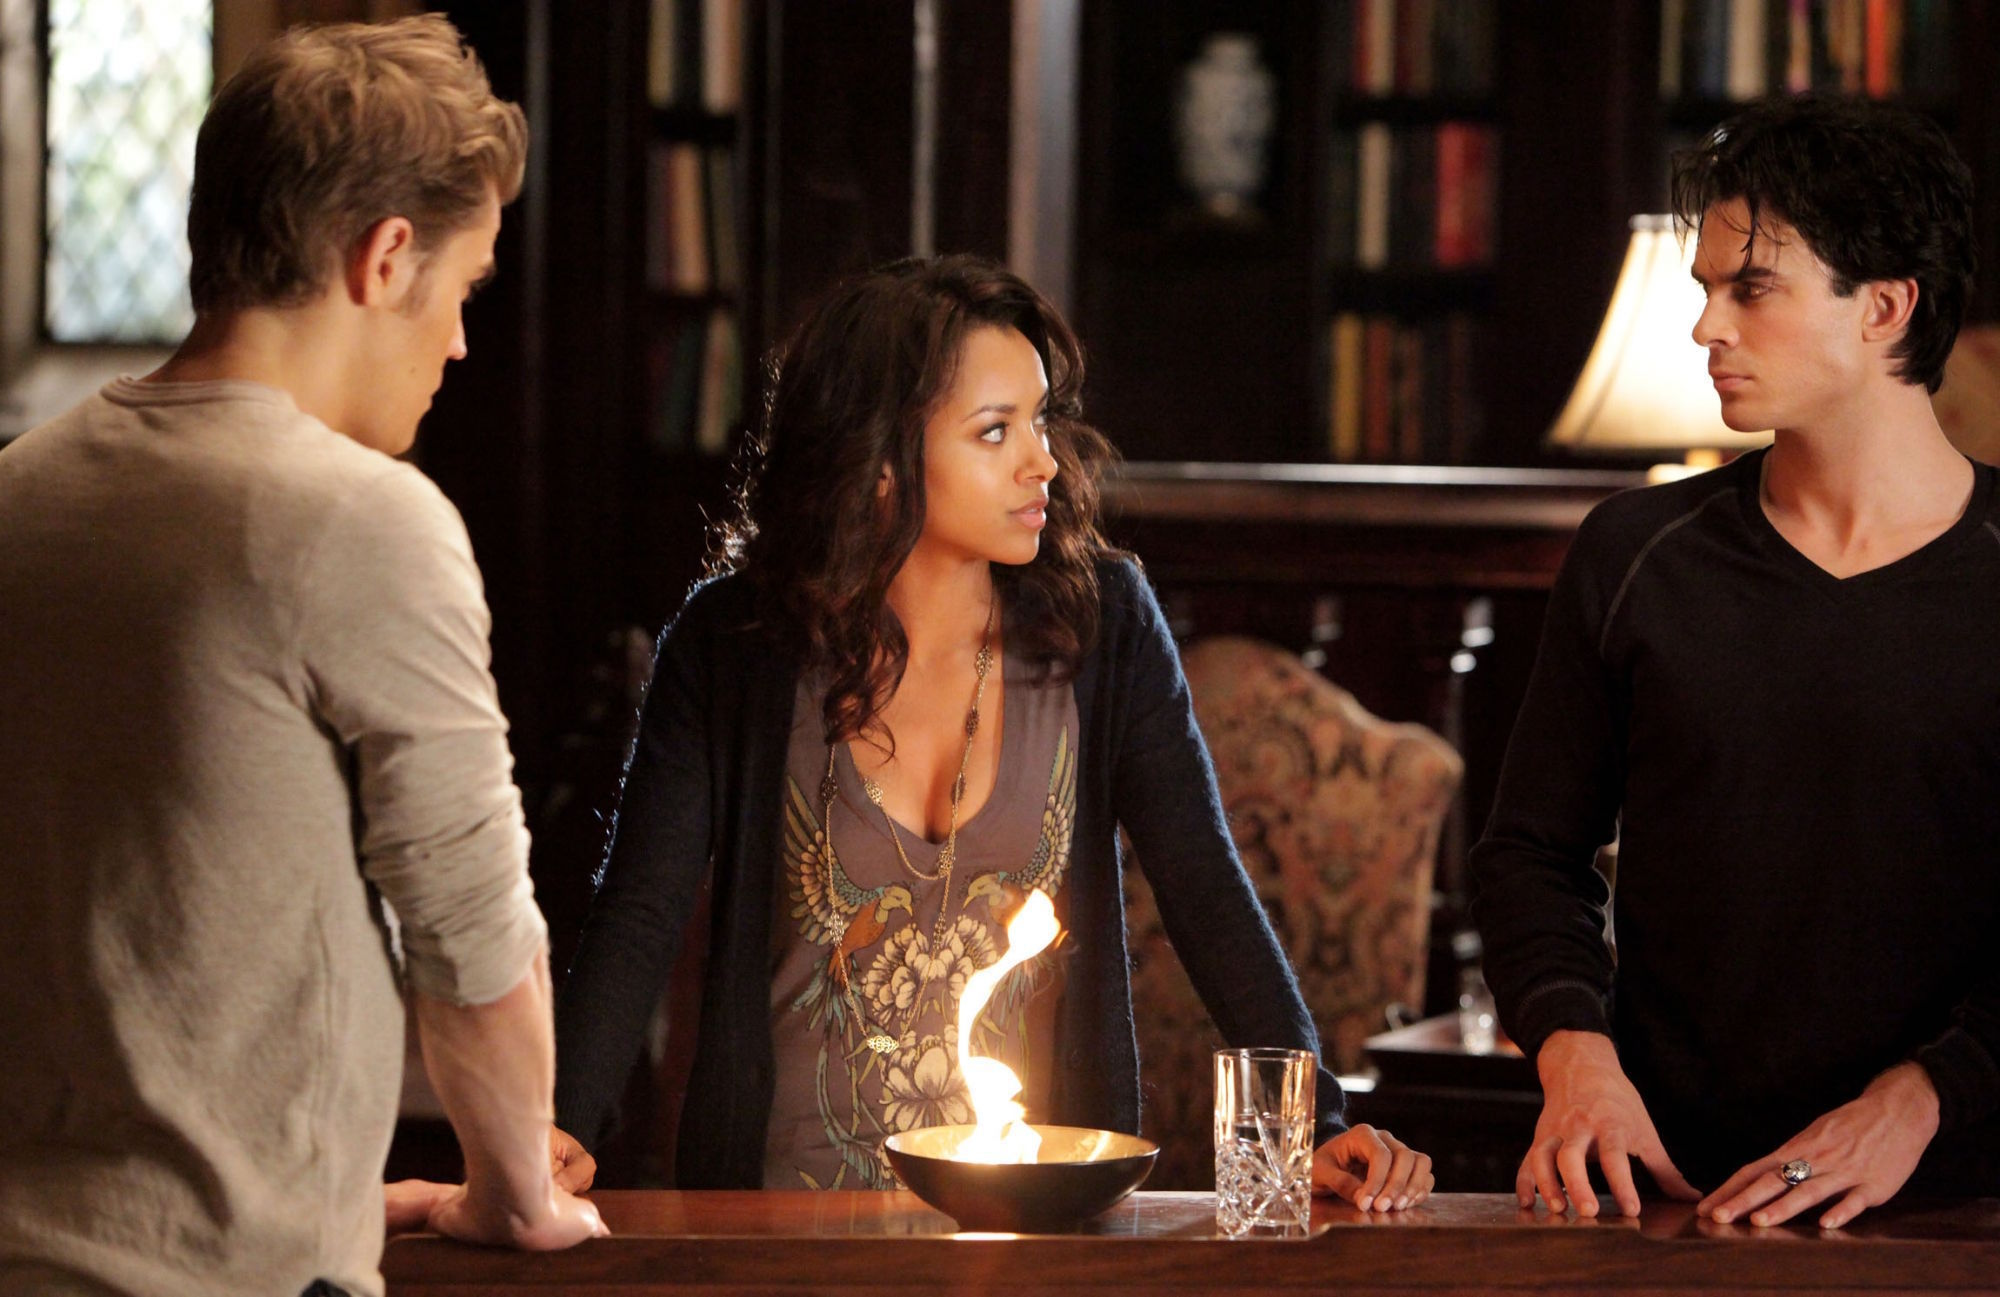 http://images4.fanpop.com/image/photos/16900000/2-10-The-Sacrifice-the-vampire-diaries-16900264-2000-1297.jpg